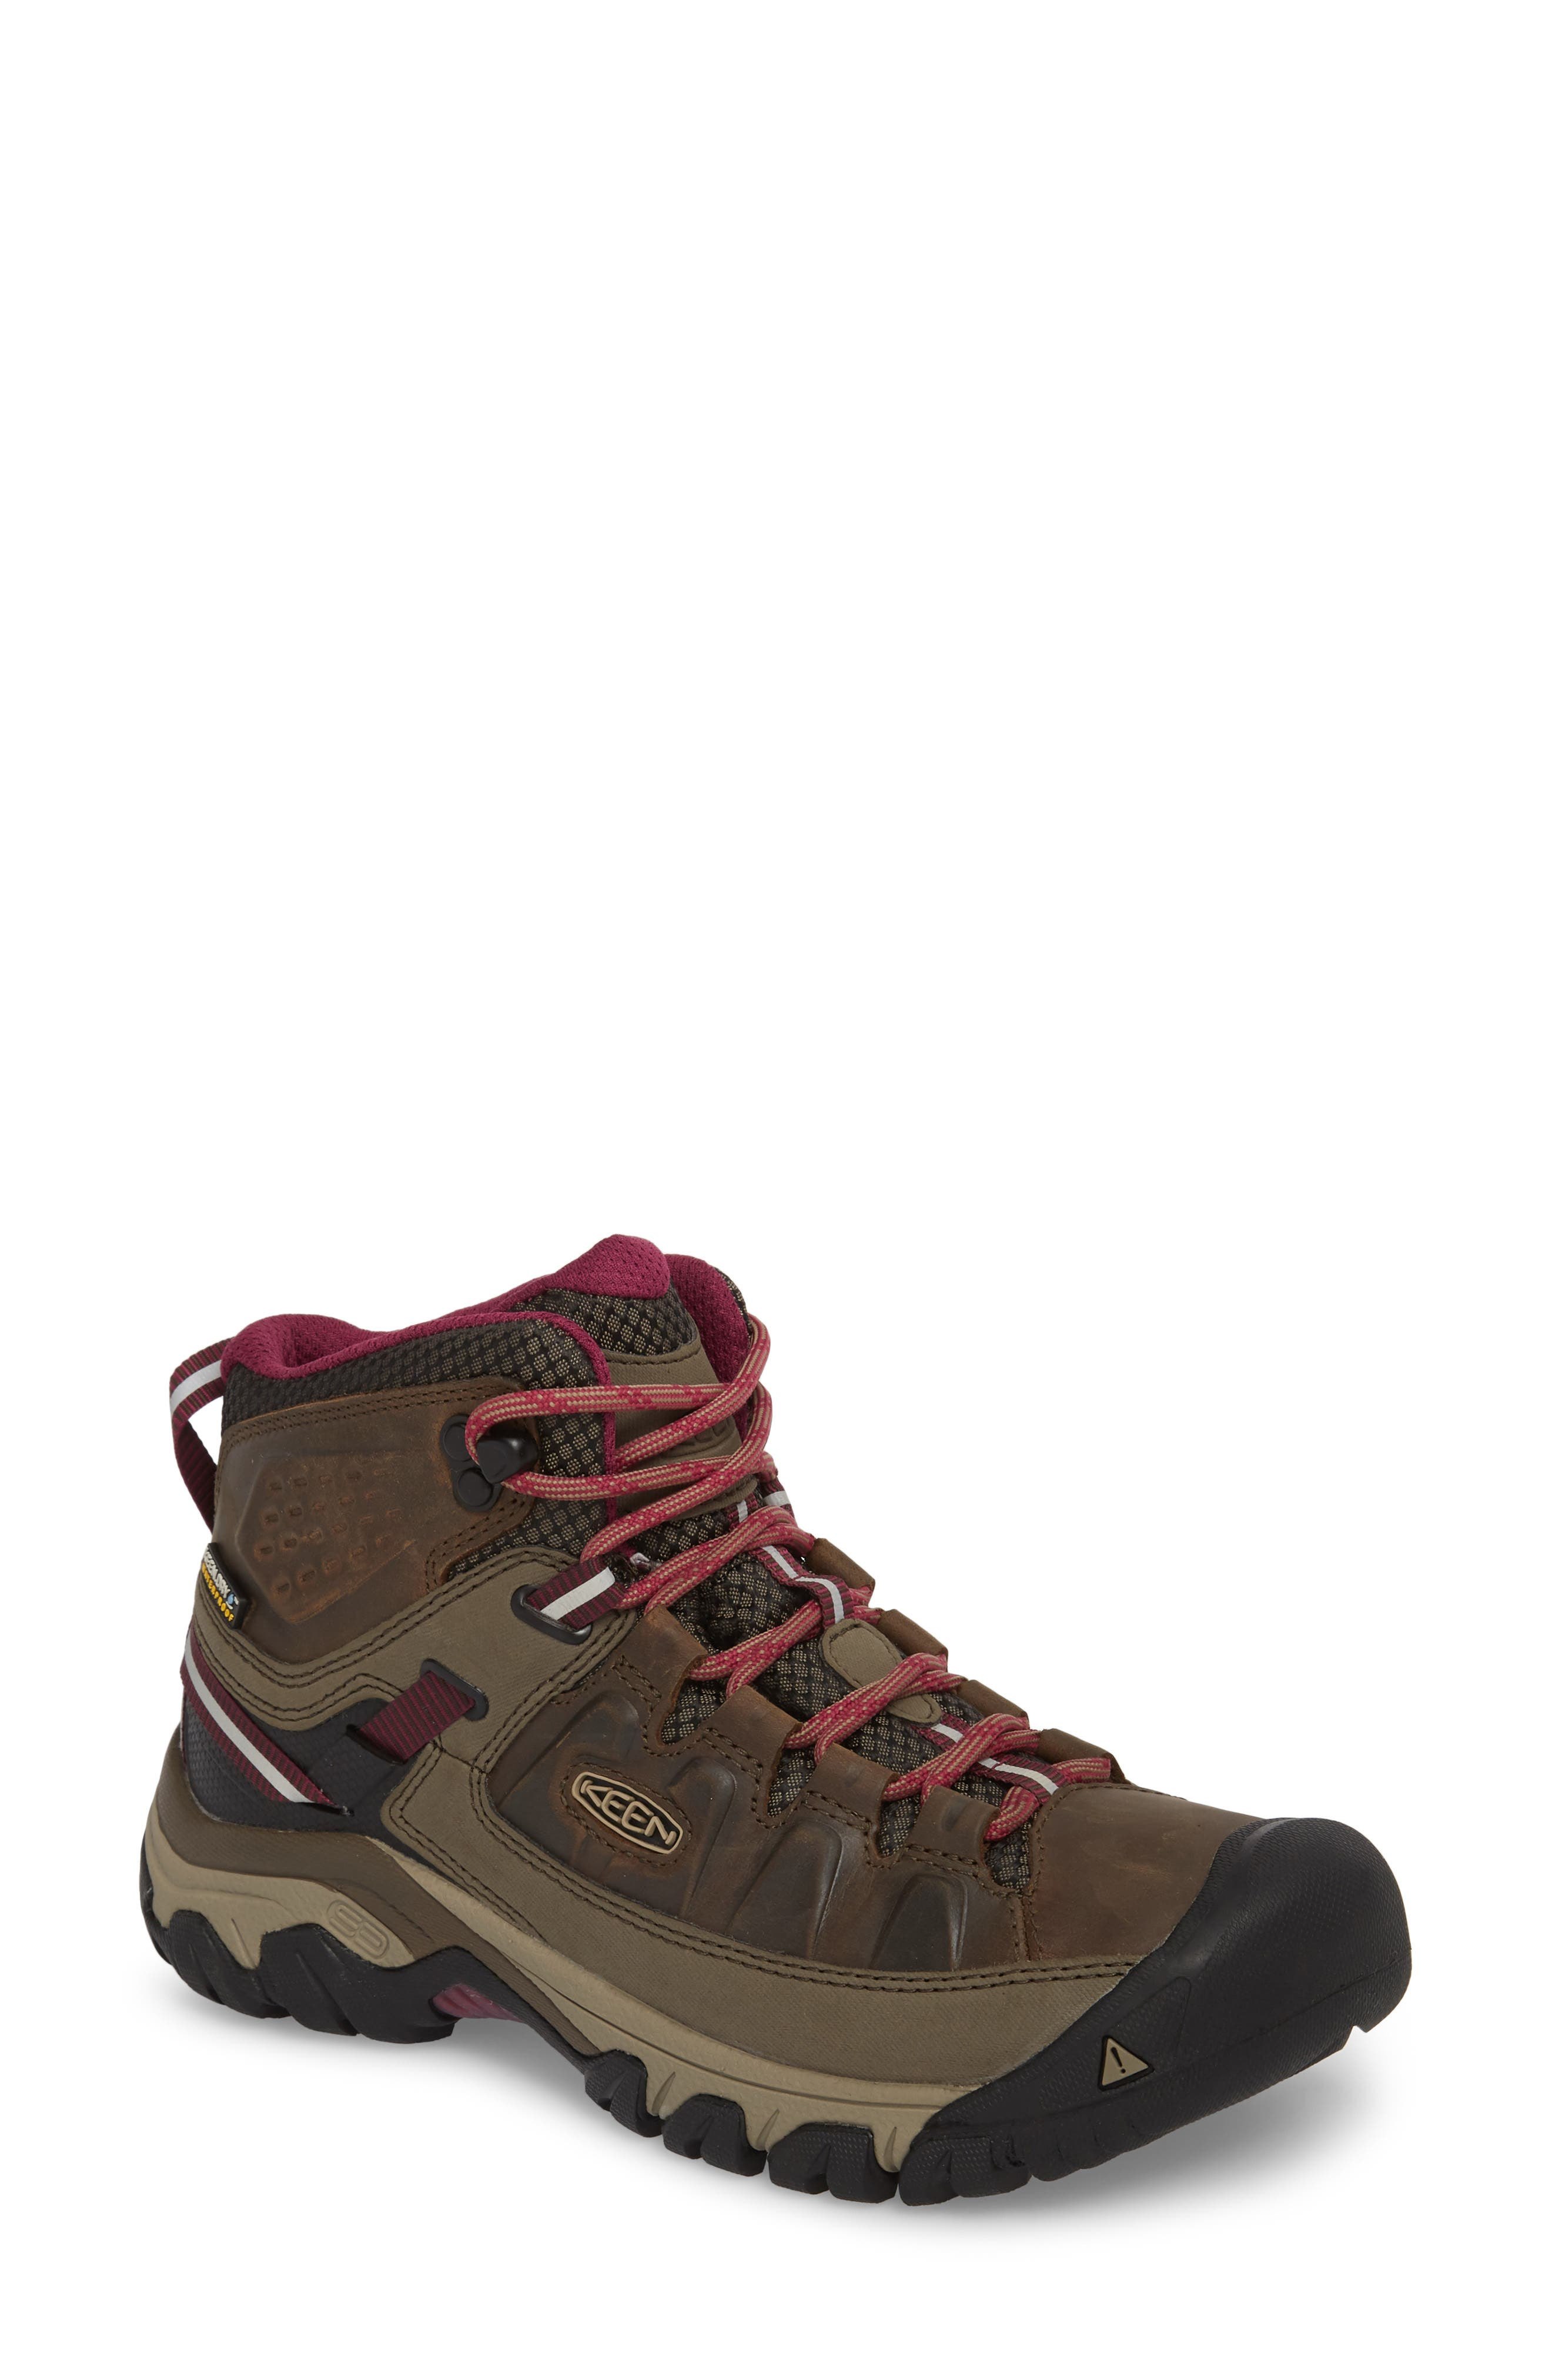 Targhee III Mid Waterproof Hiking Boot,                             Main thumbnail 1, color,                             Weiss/ Boysenberry Leather